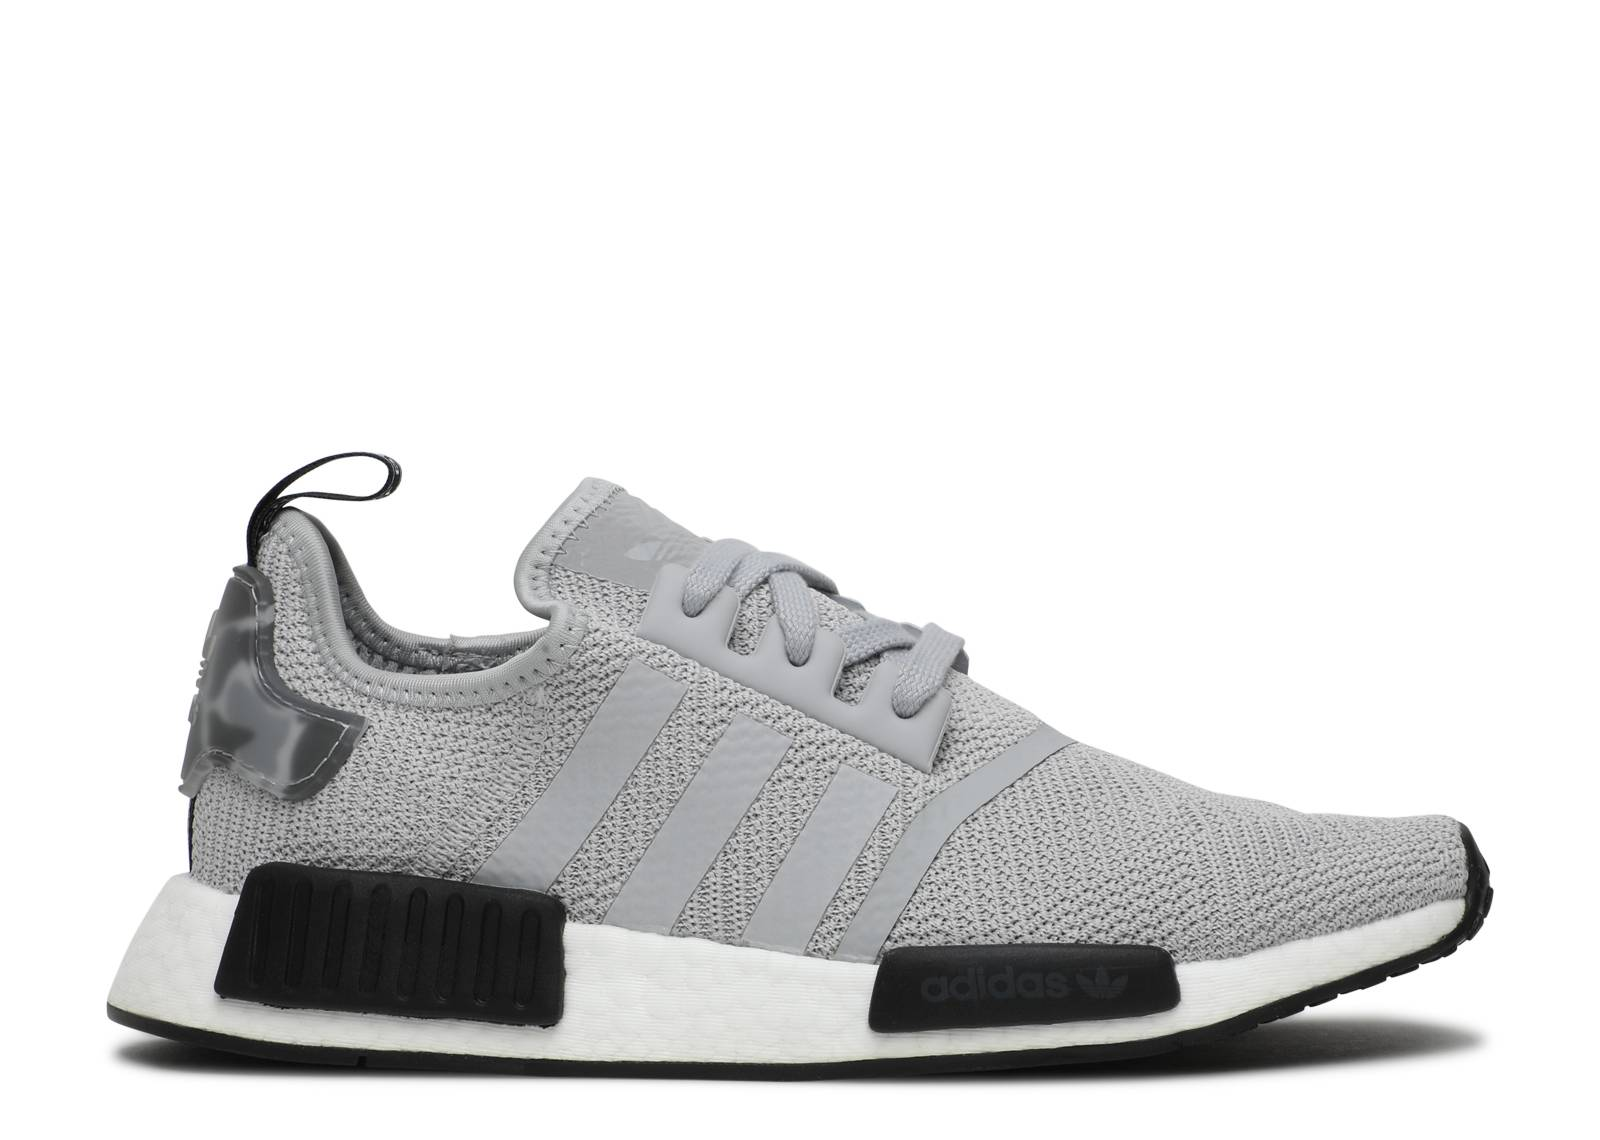 20d31385e13 Adidas NMD - adidas Originals Men s   Women s Shoes